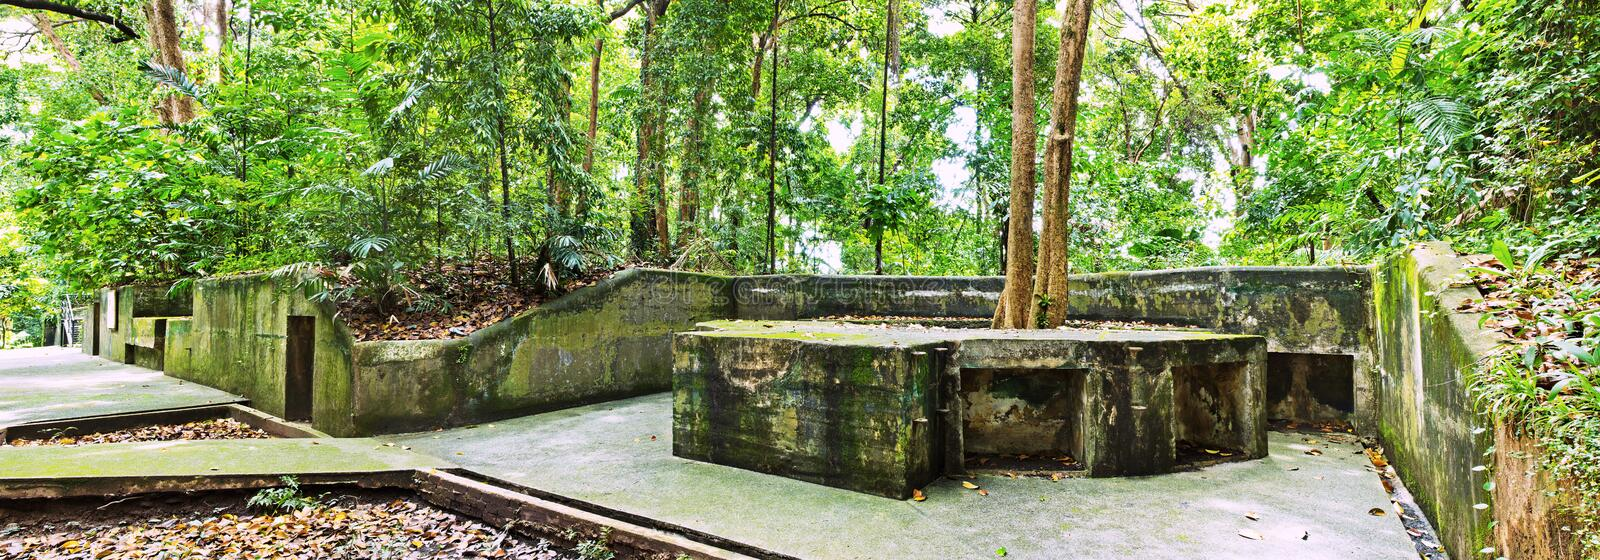 Panorama of World War II Battery in the jungle. World War 2 battery has been preserved, yet over time,the jungle has reclaimed the land, including the concrete royalty free stock photography